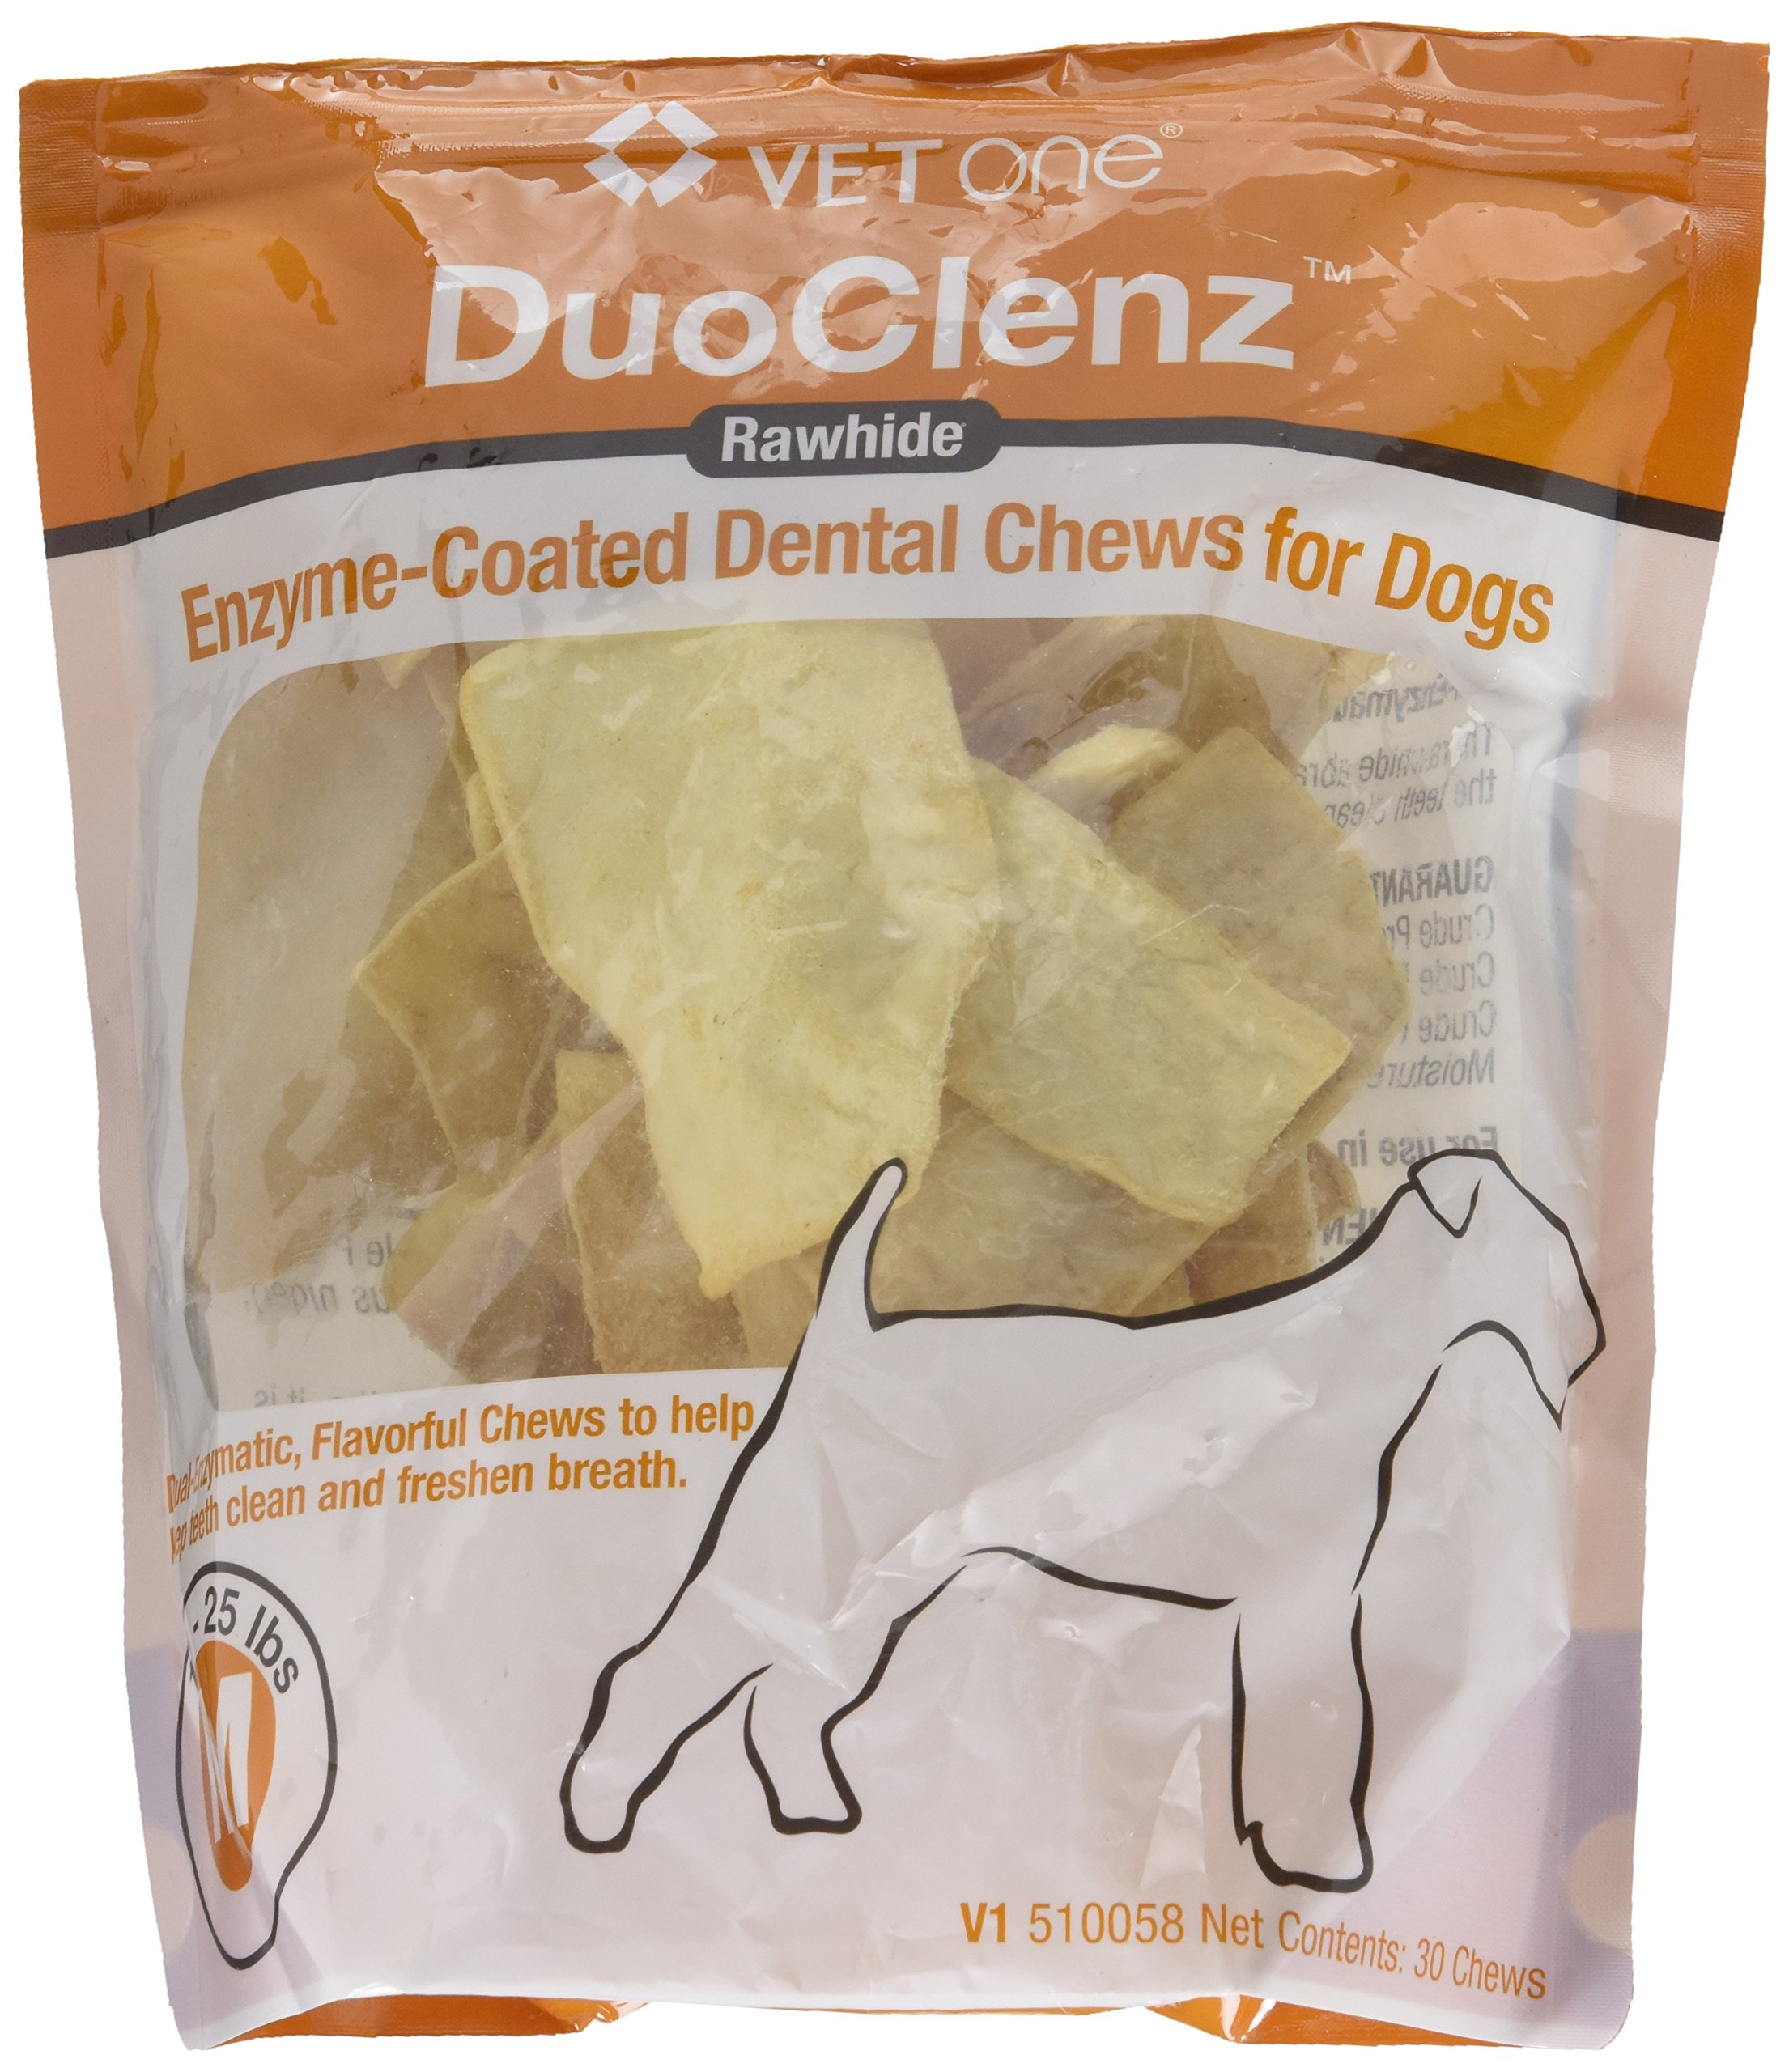 VetOne DuoClenz Enzyme Coated Dental Chews for Medium Size Dogs 30 Count by VET ONE